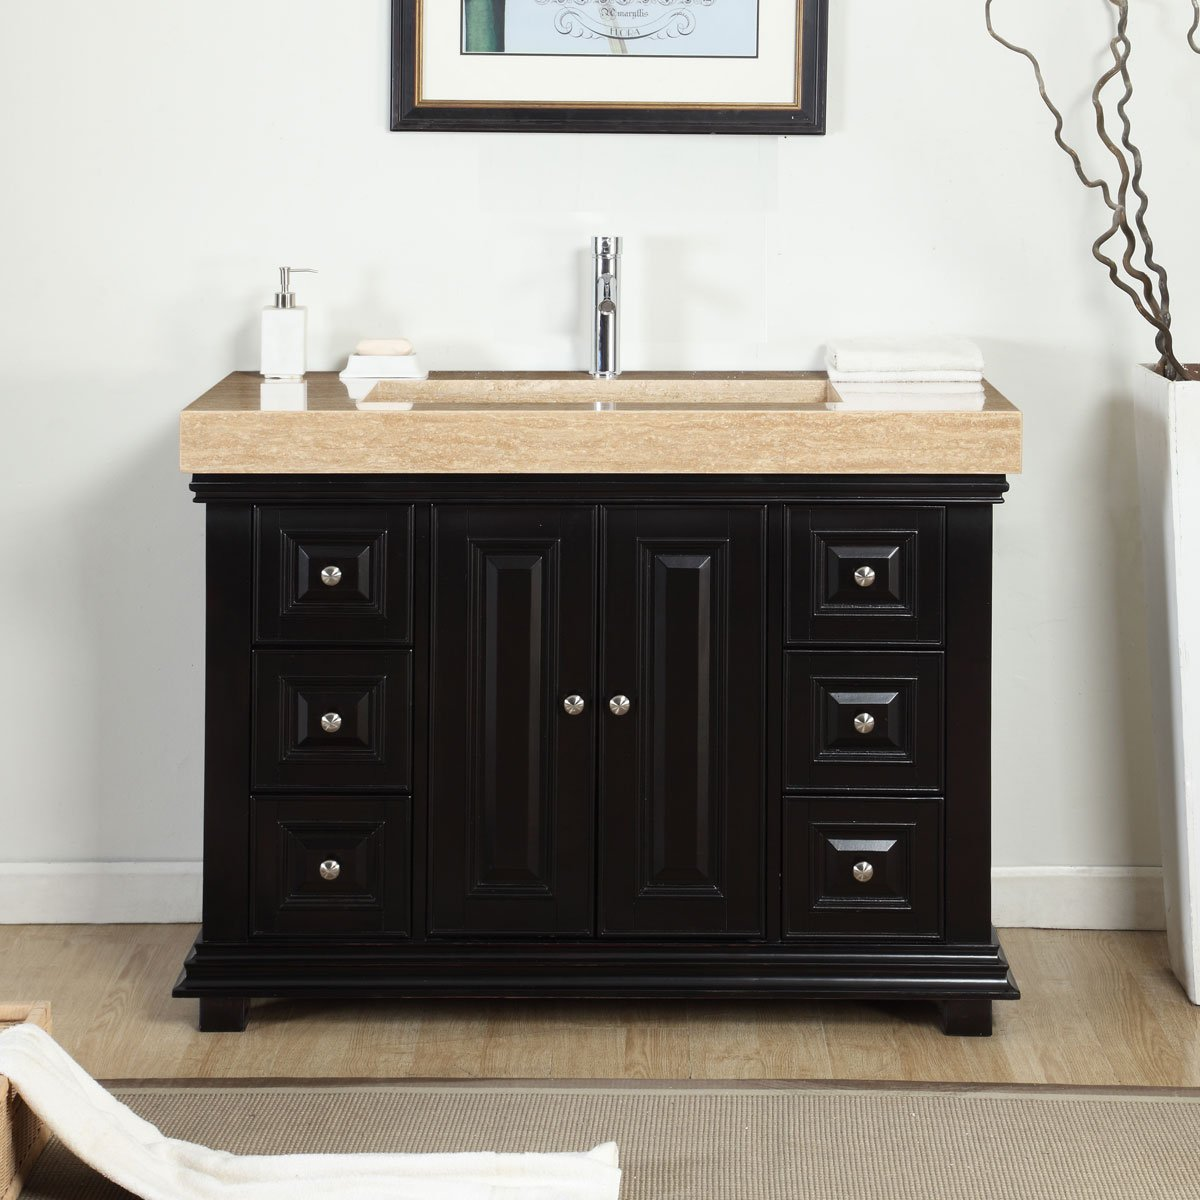 Silkroad Exclusive Bathroom Vanity Travertine Top Single Ramp Sink Cabinet, 48'' by Silkroad Exclusive